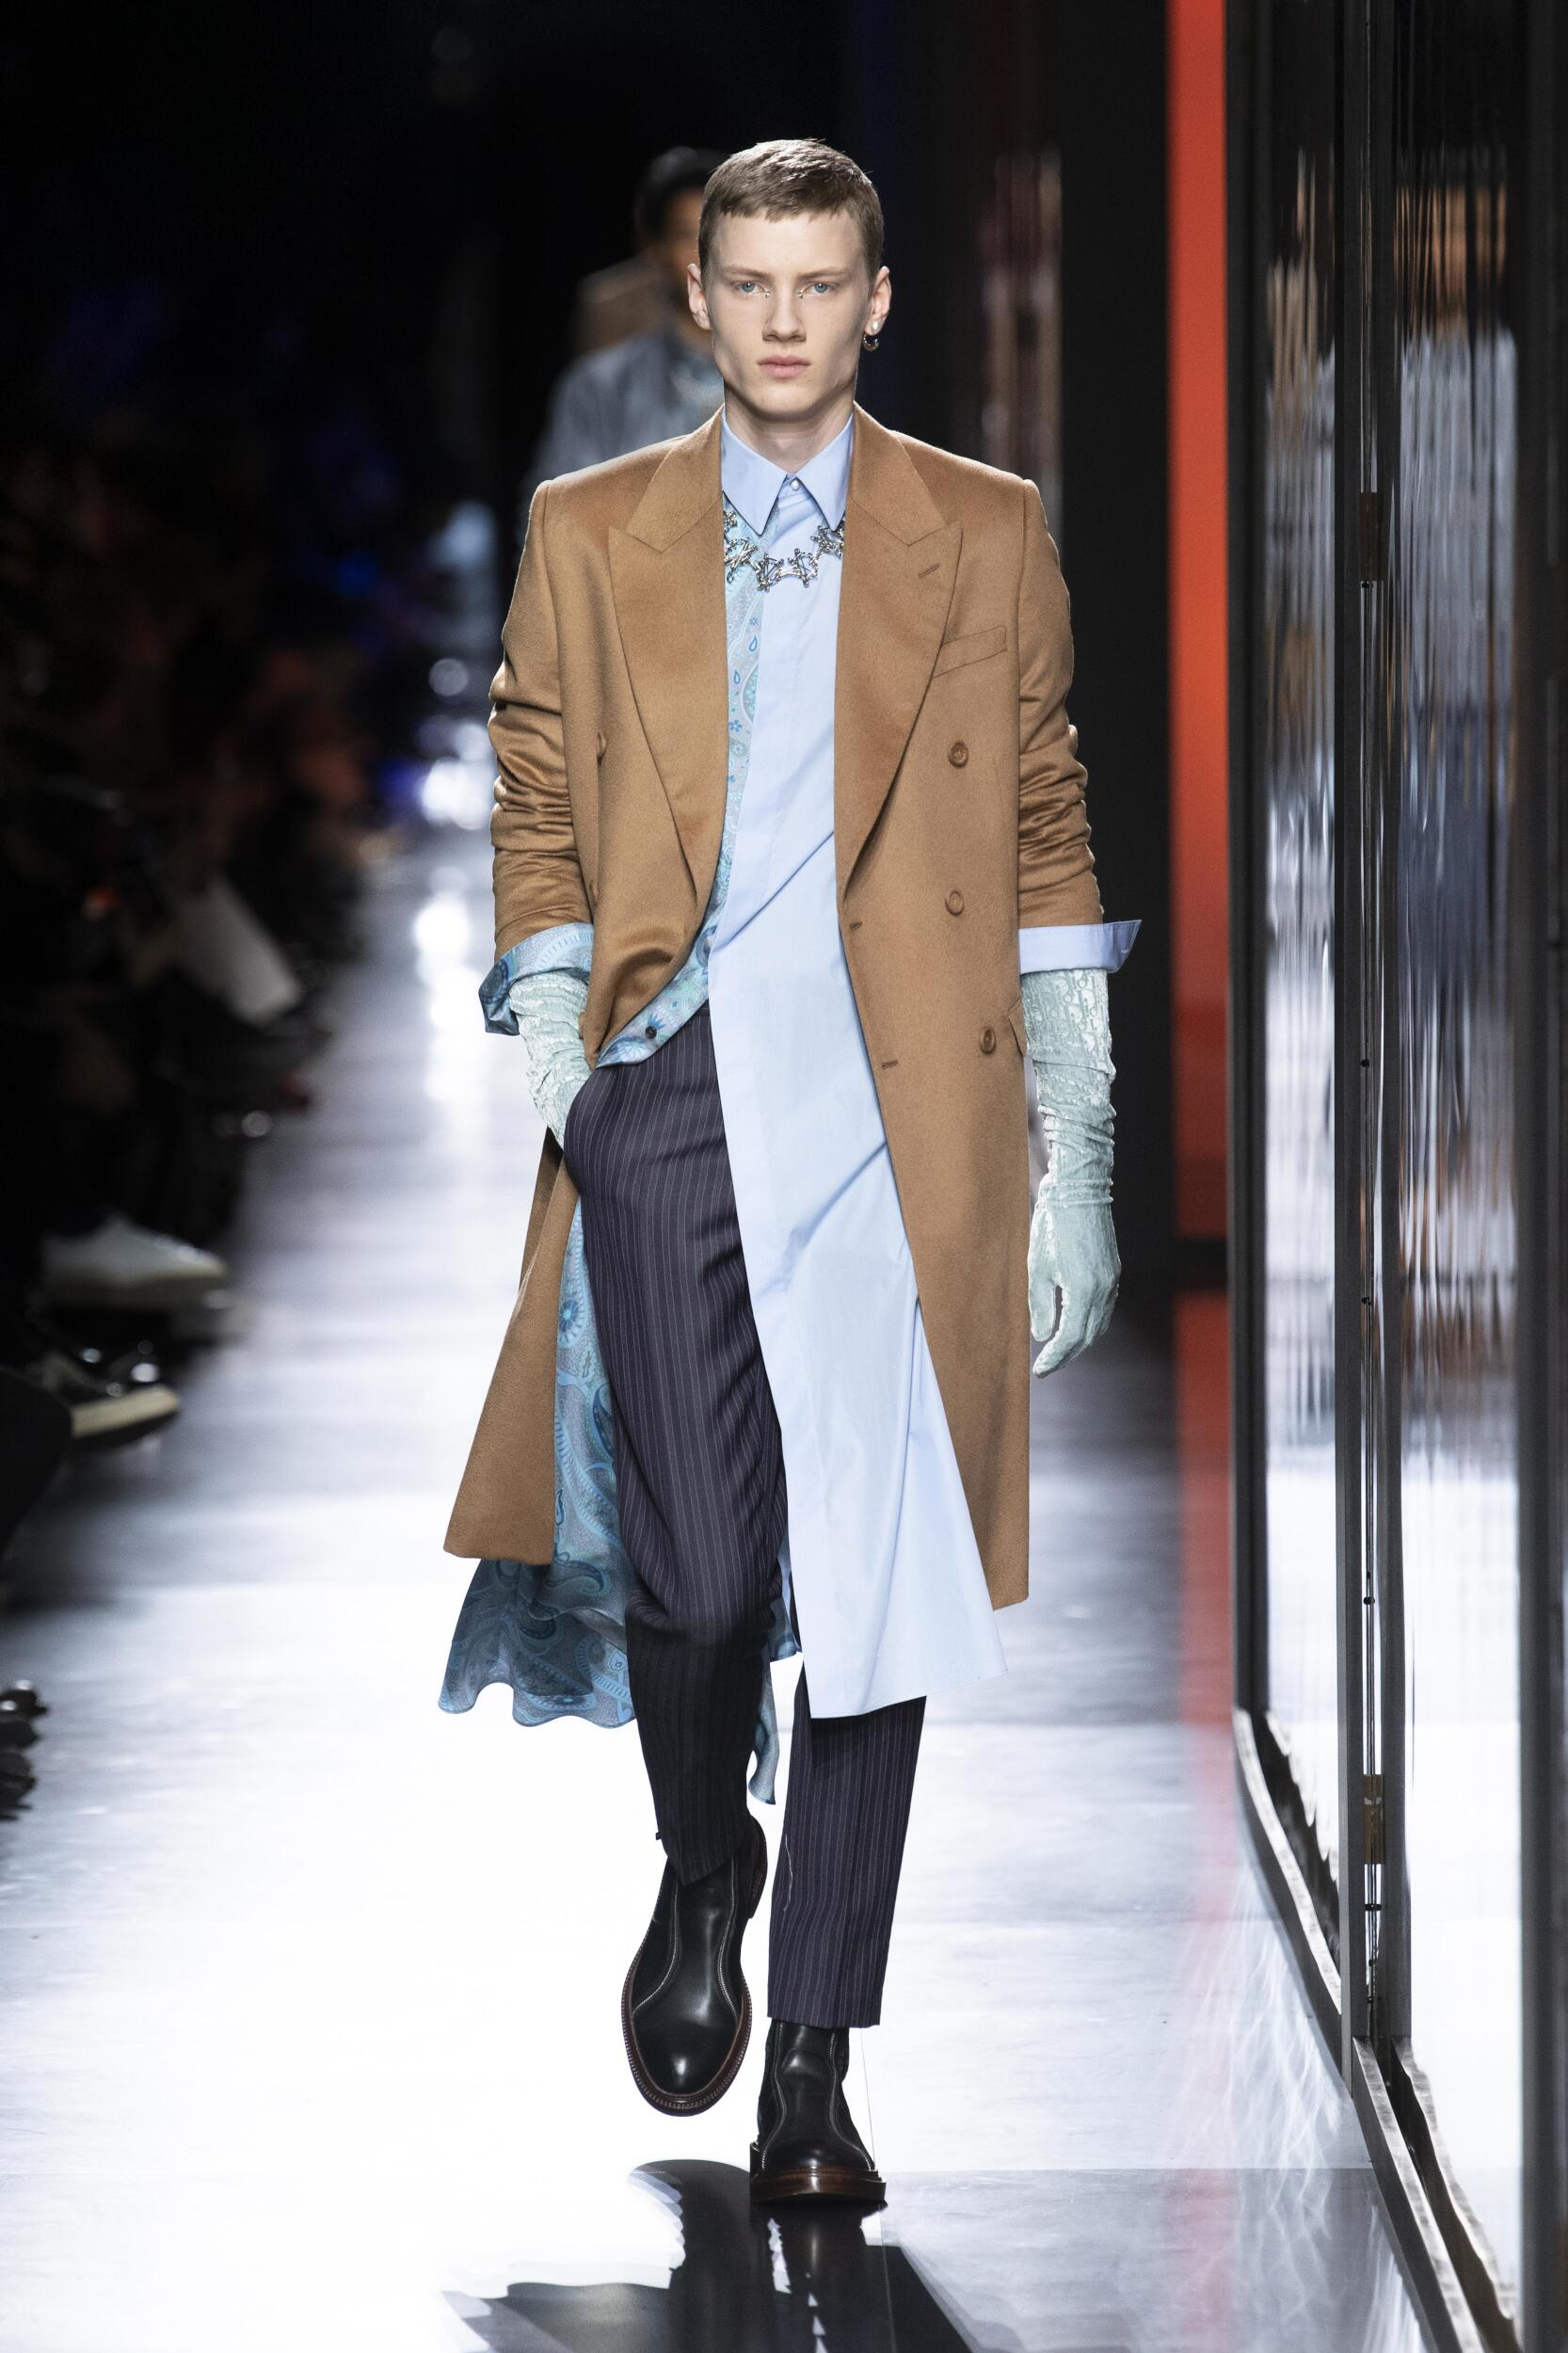 Dior Fall Winter 2020 Mens Collection Paris Fashion Week